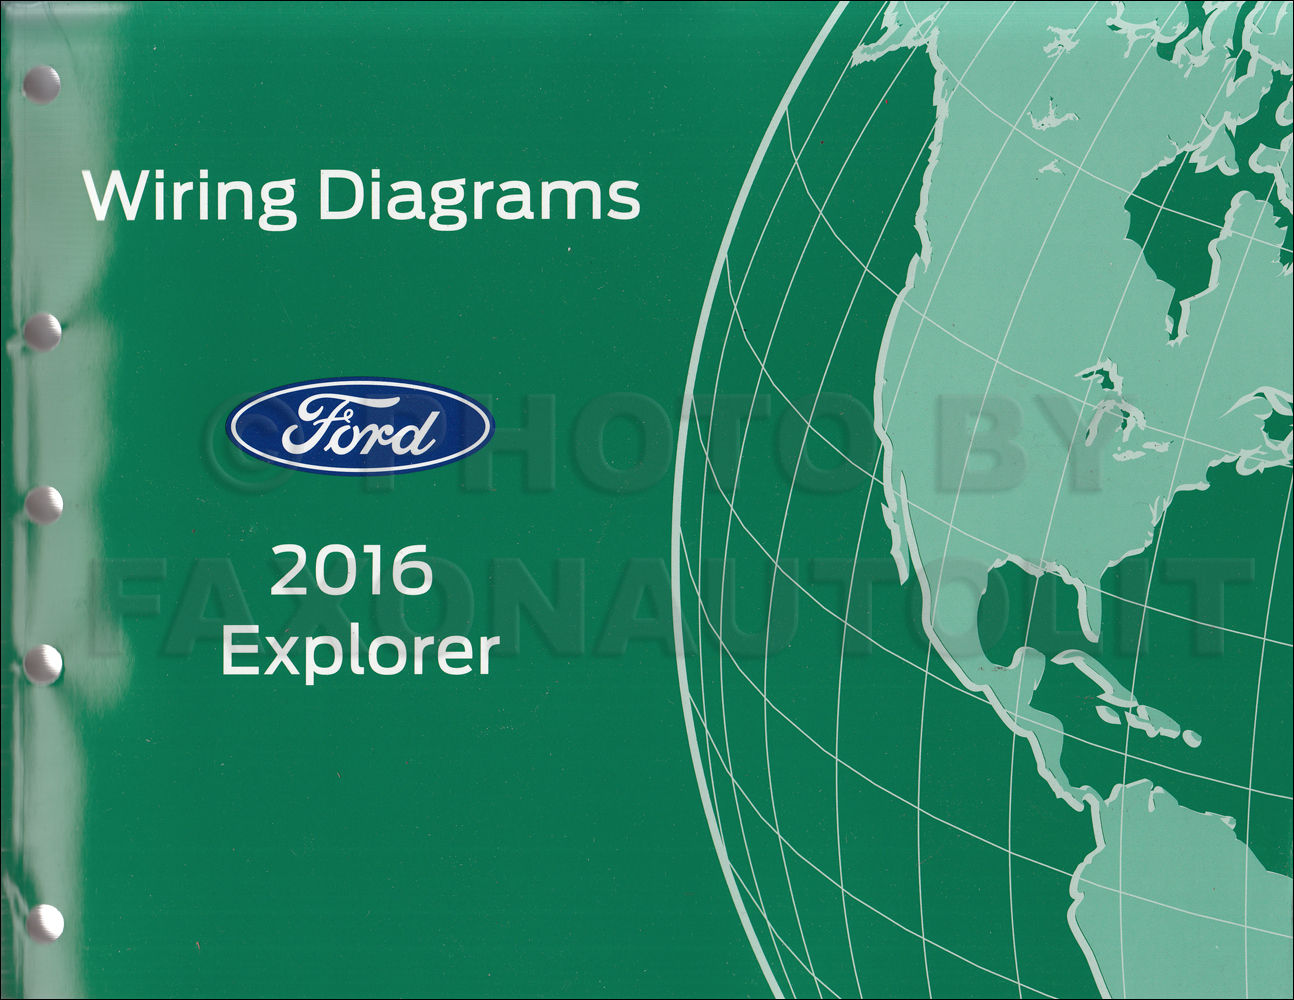 Ford Explorer Parts Diagram Wiring Harness Wiring Diagram